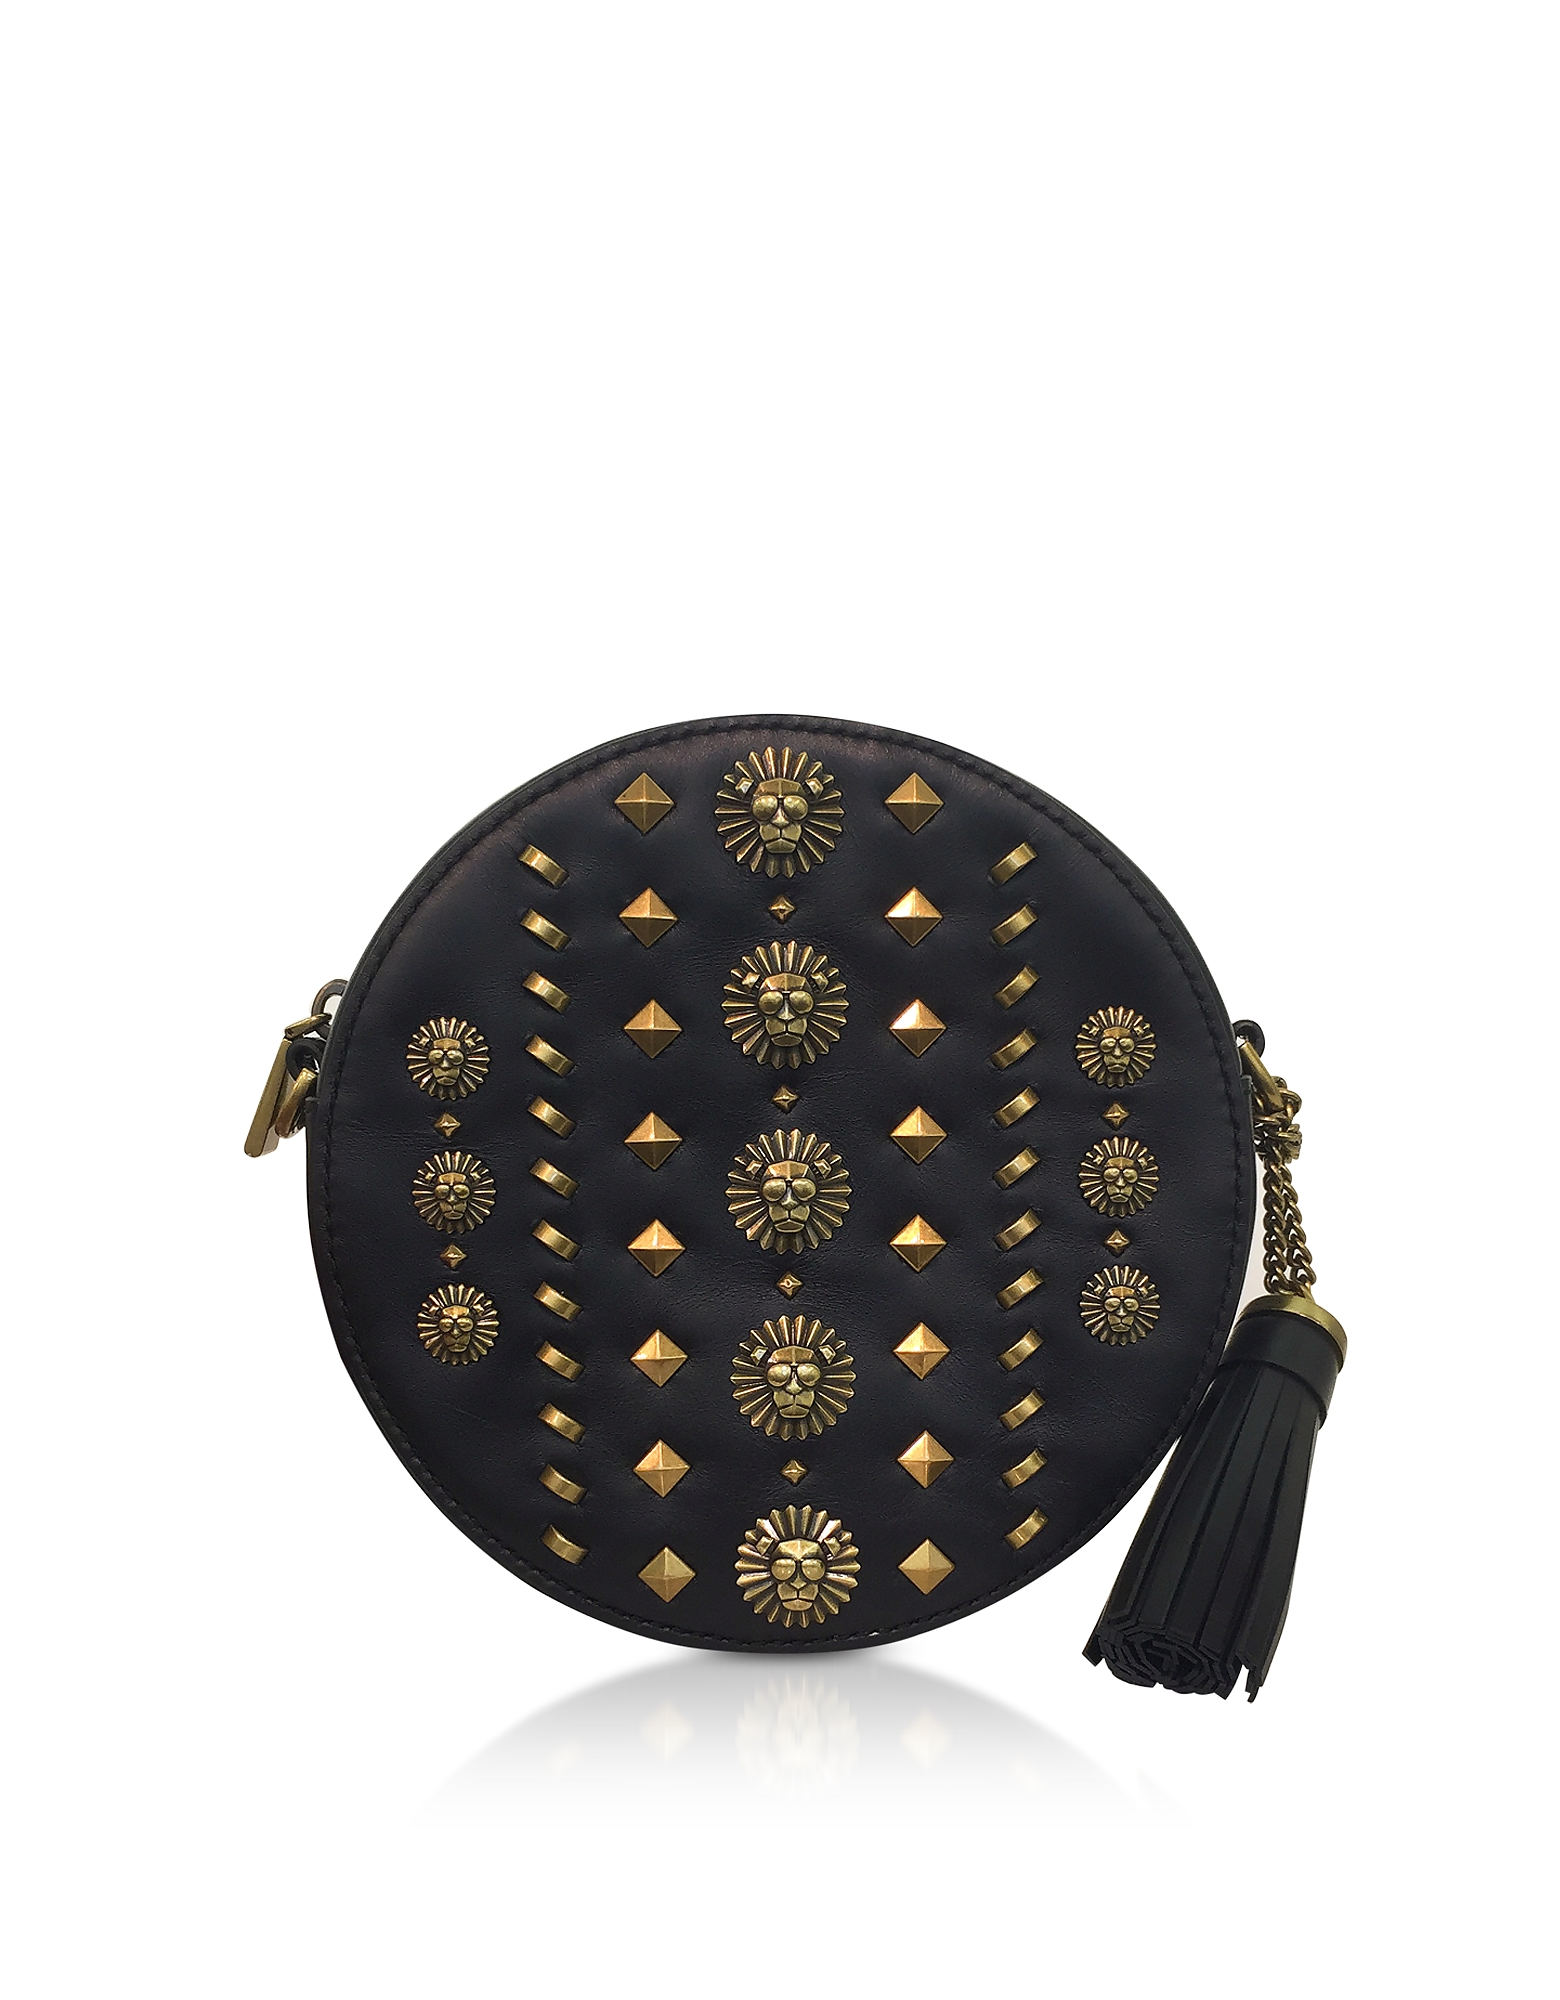 Michael Kors Handbags, Black Studded Polished Leather Canteen Crossbody